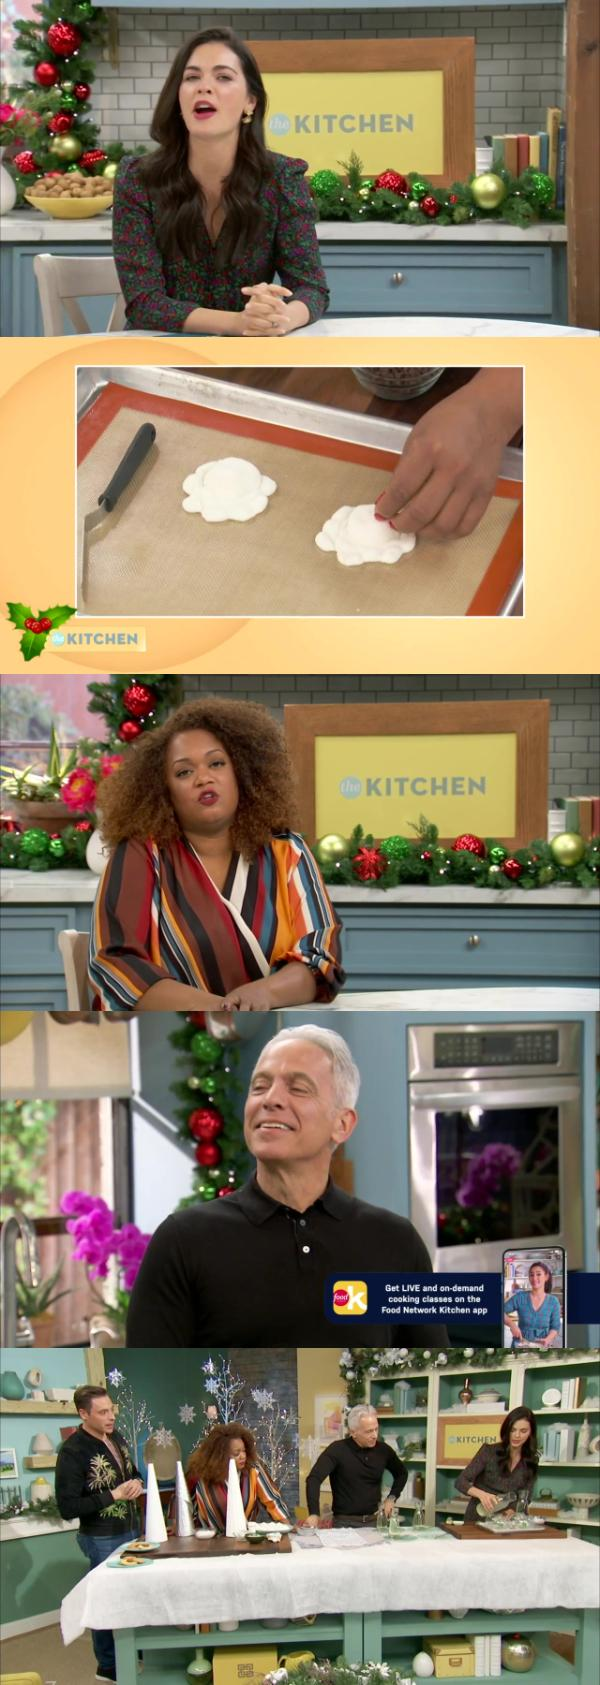 [Bild: 130032372_the-kitchen-s23e05-pump-up-the...ffeine.jpg]